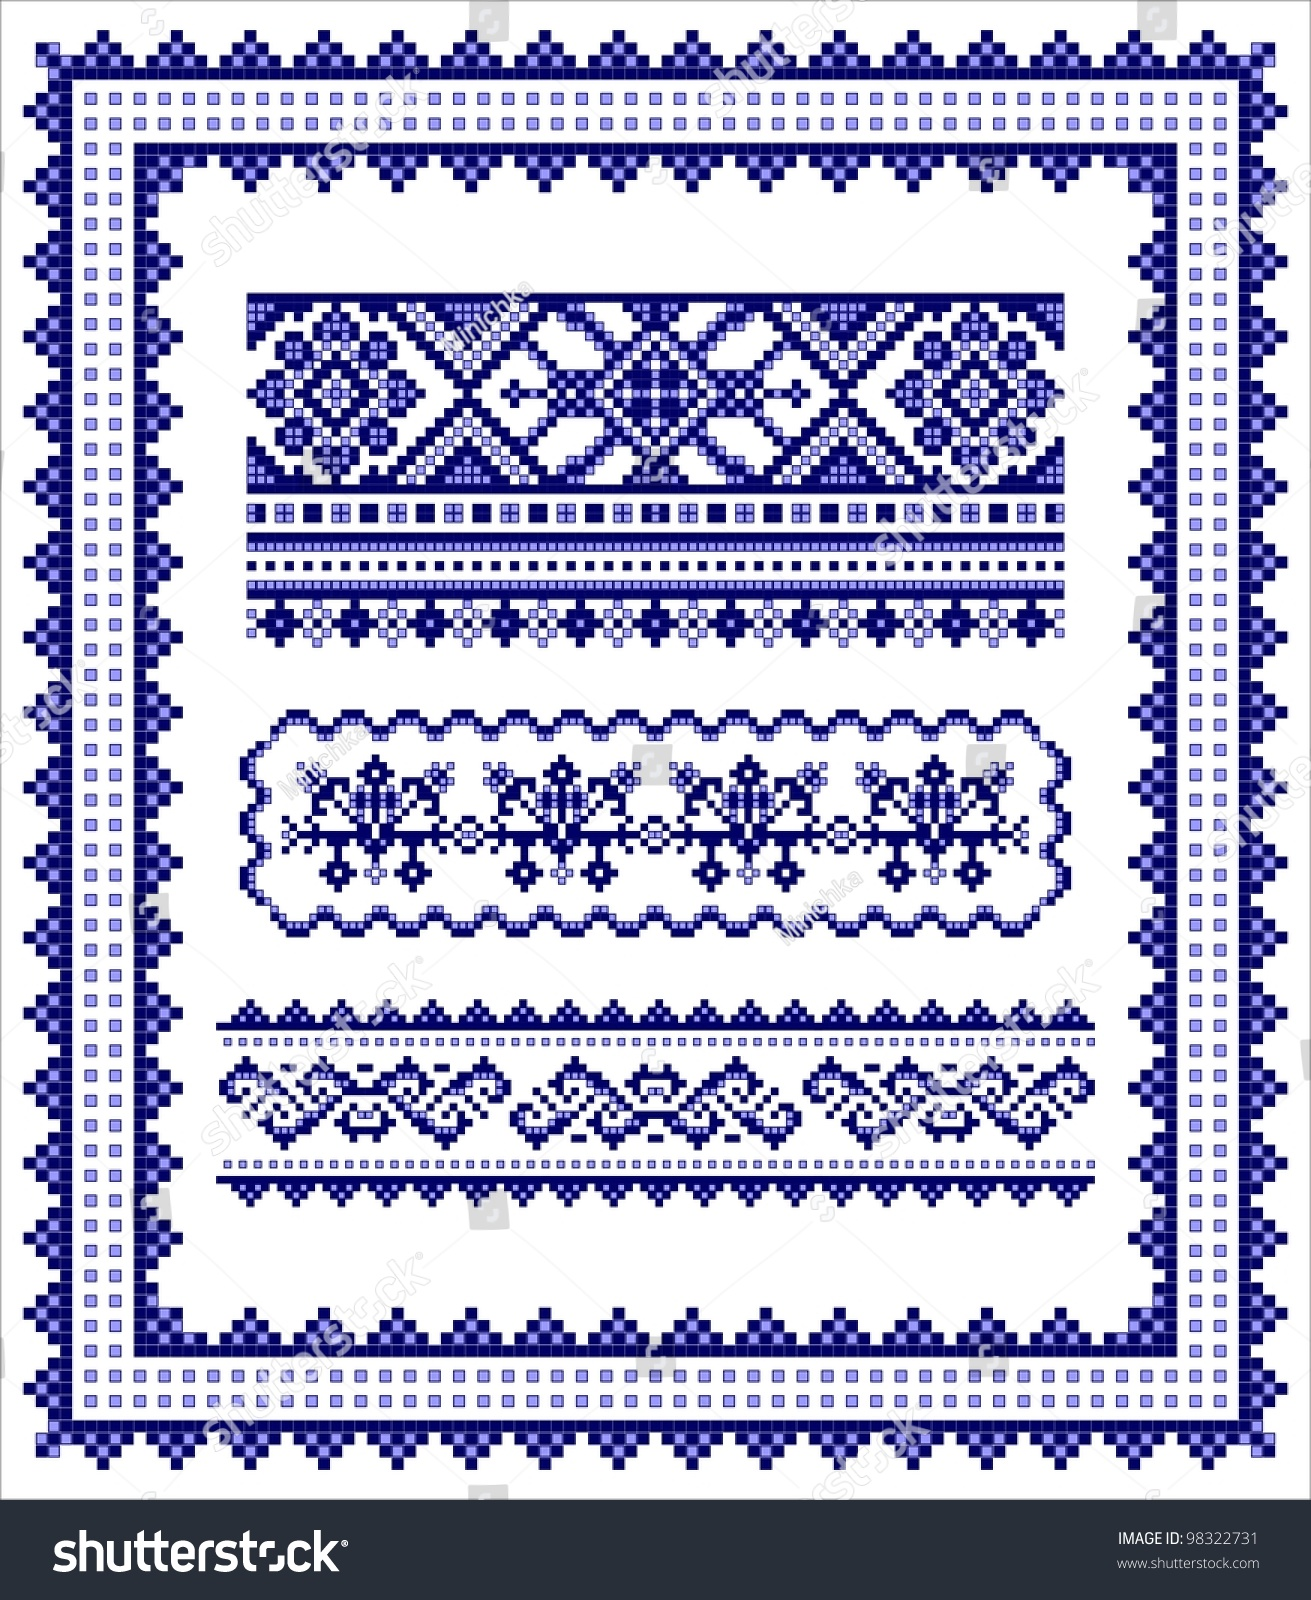 ethnic cross stitch frame and borders pattern